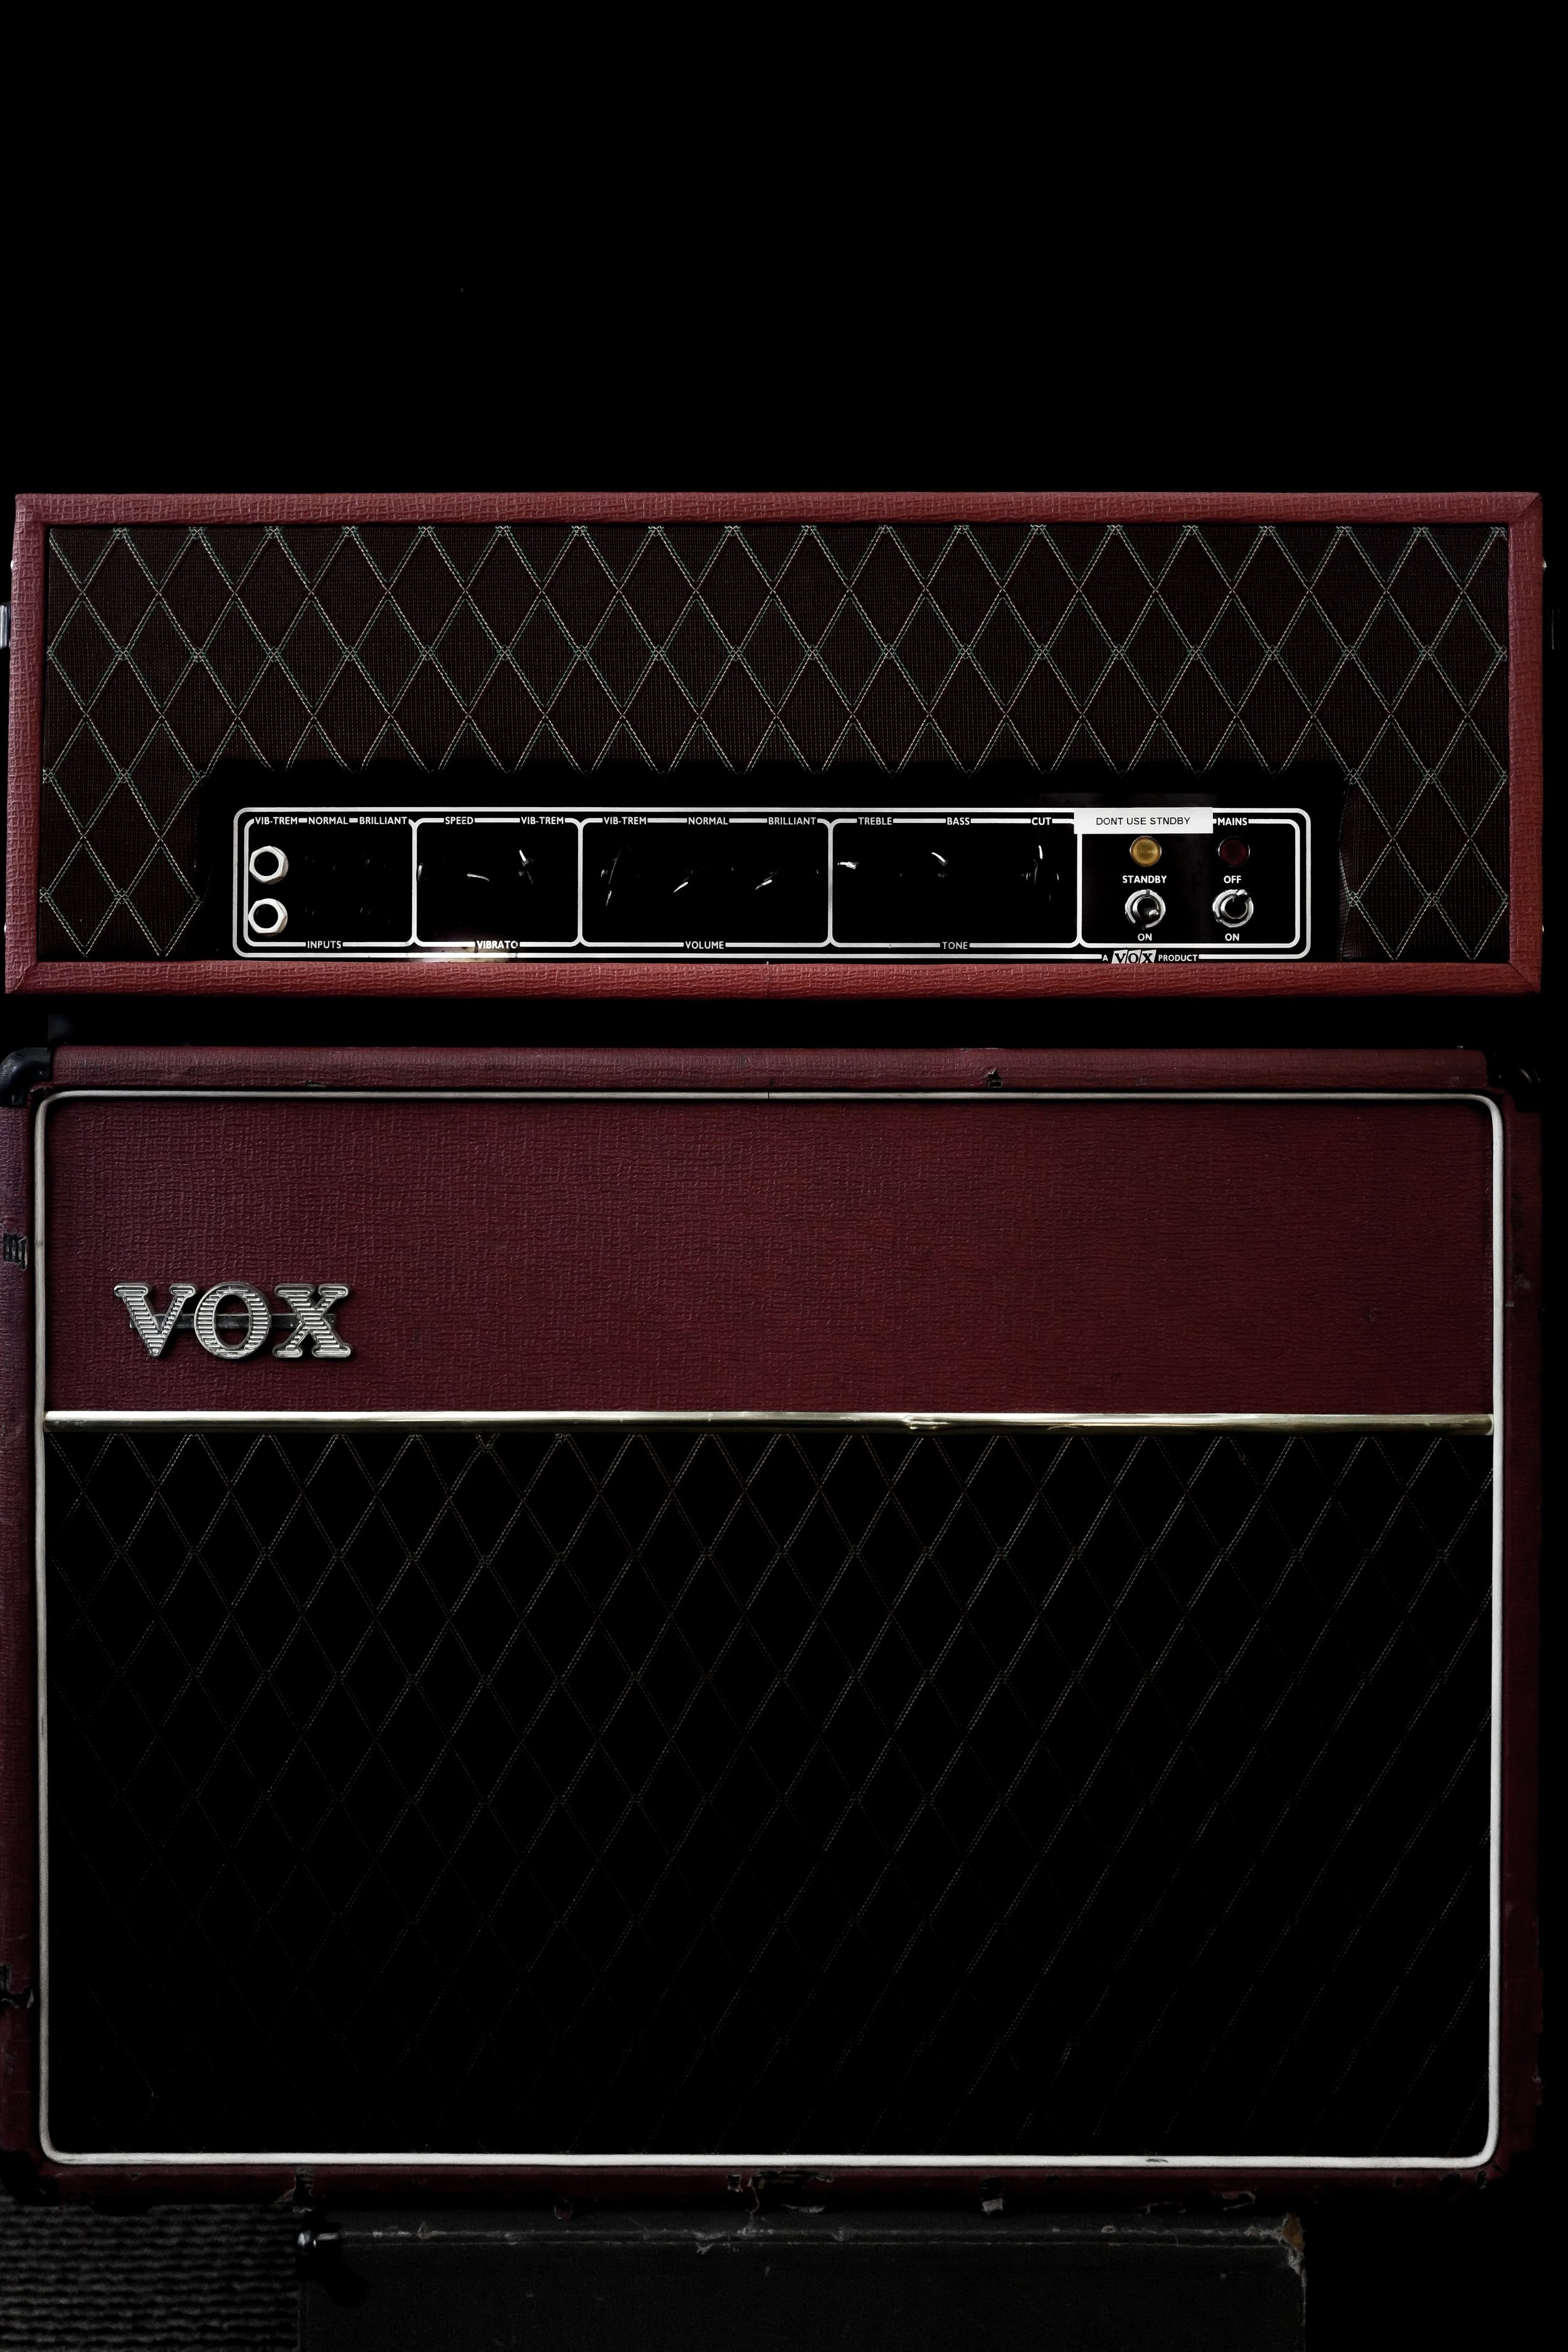 1993 Vox AC30 - The midrange that resides in my head and heart.